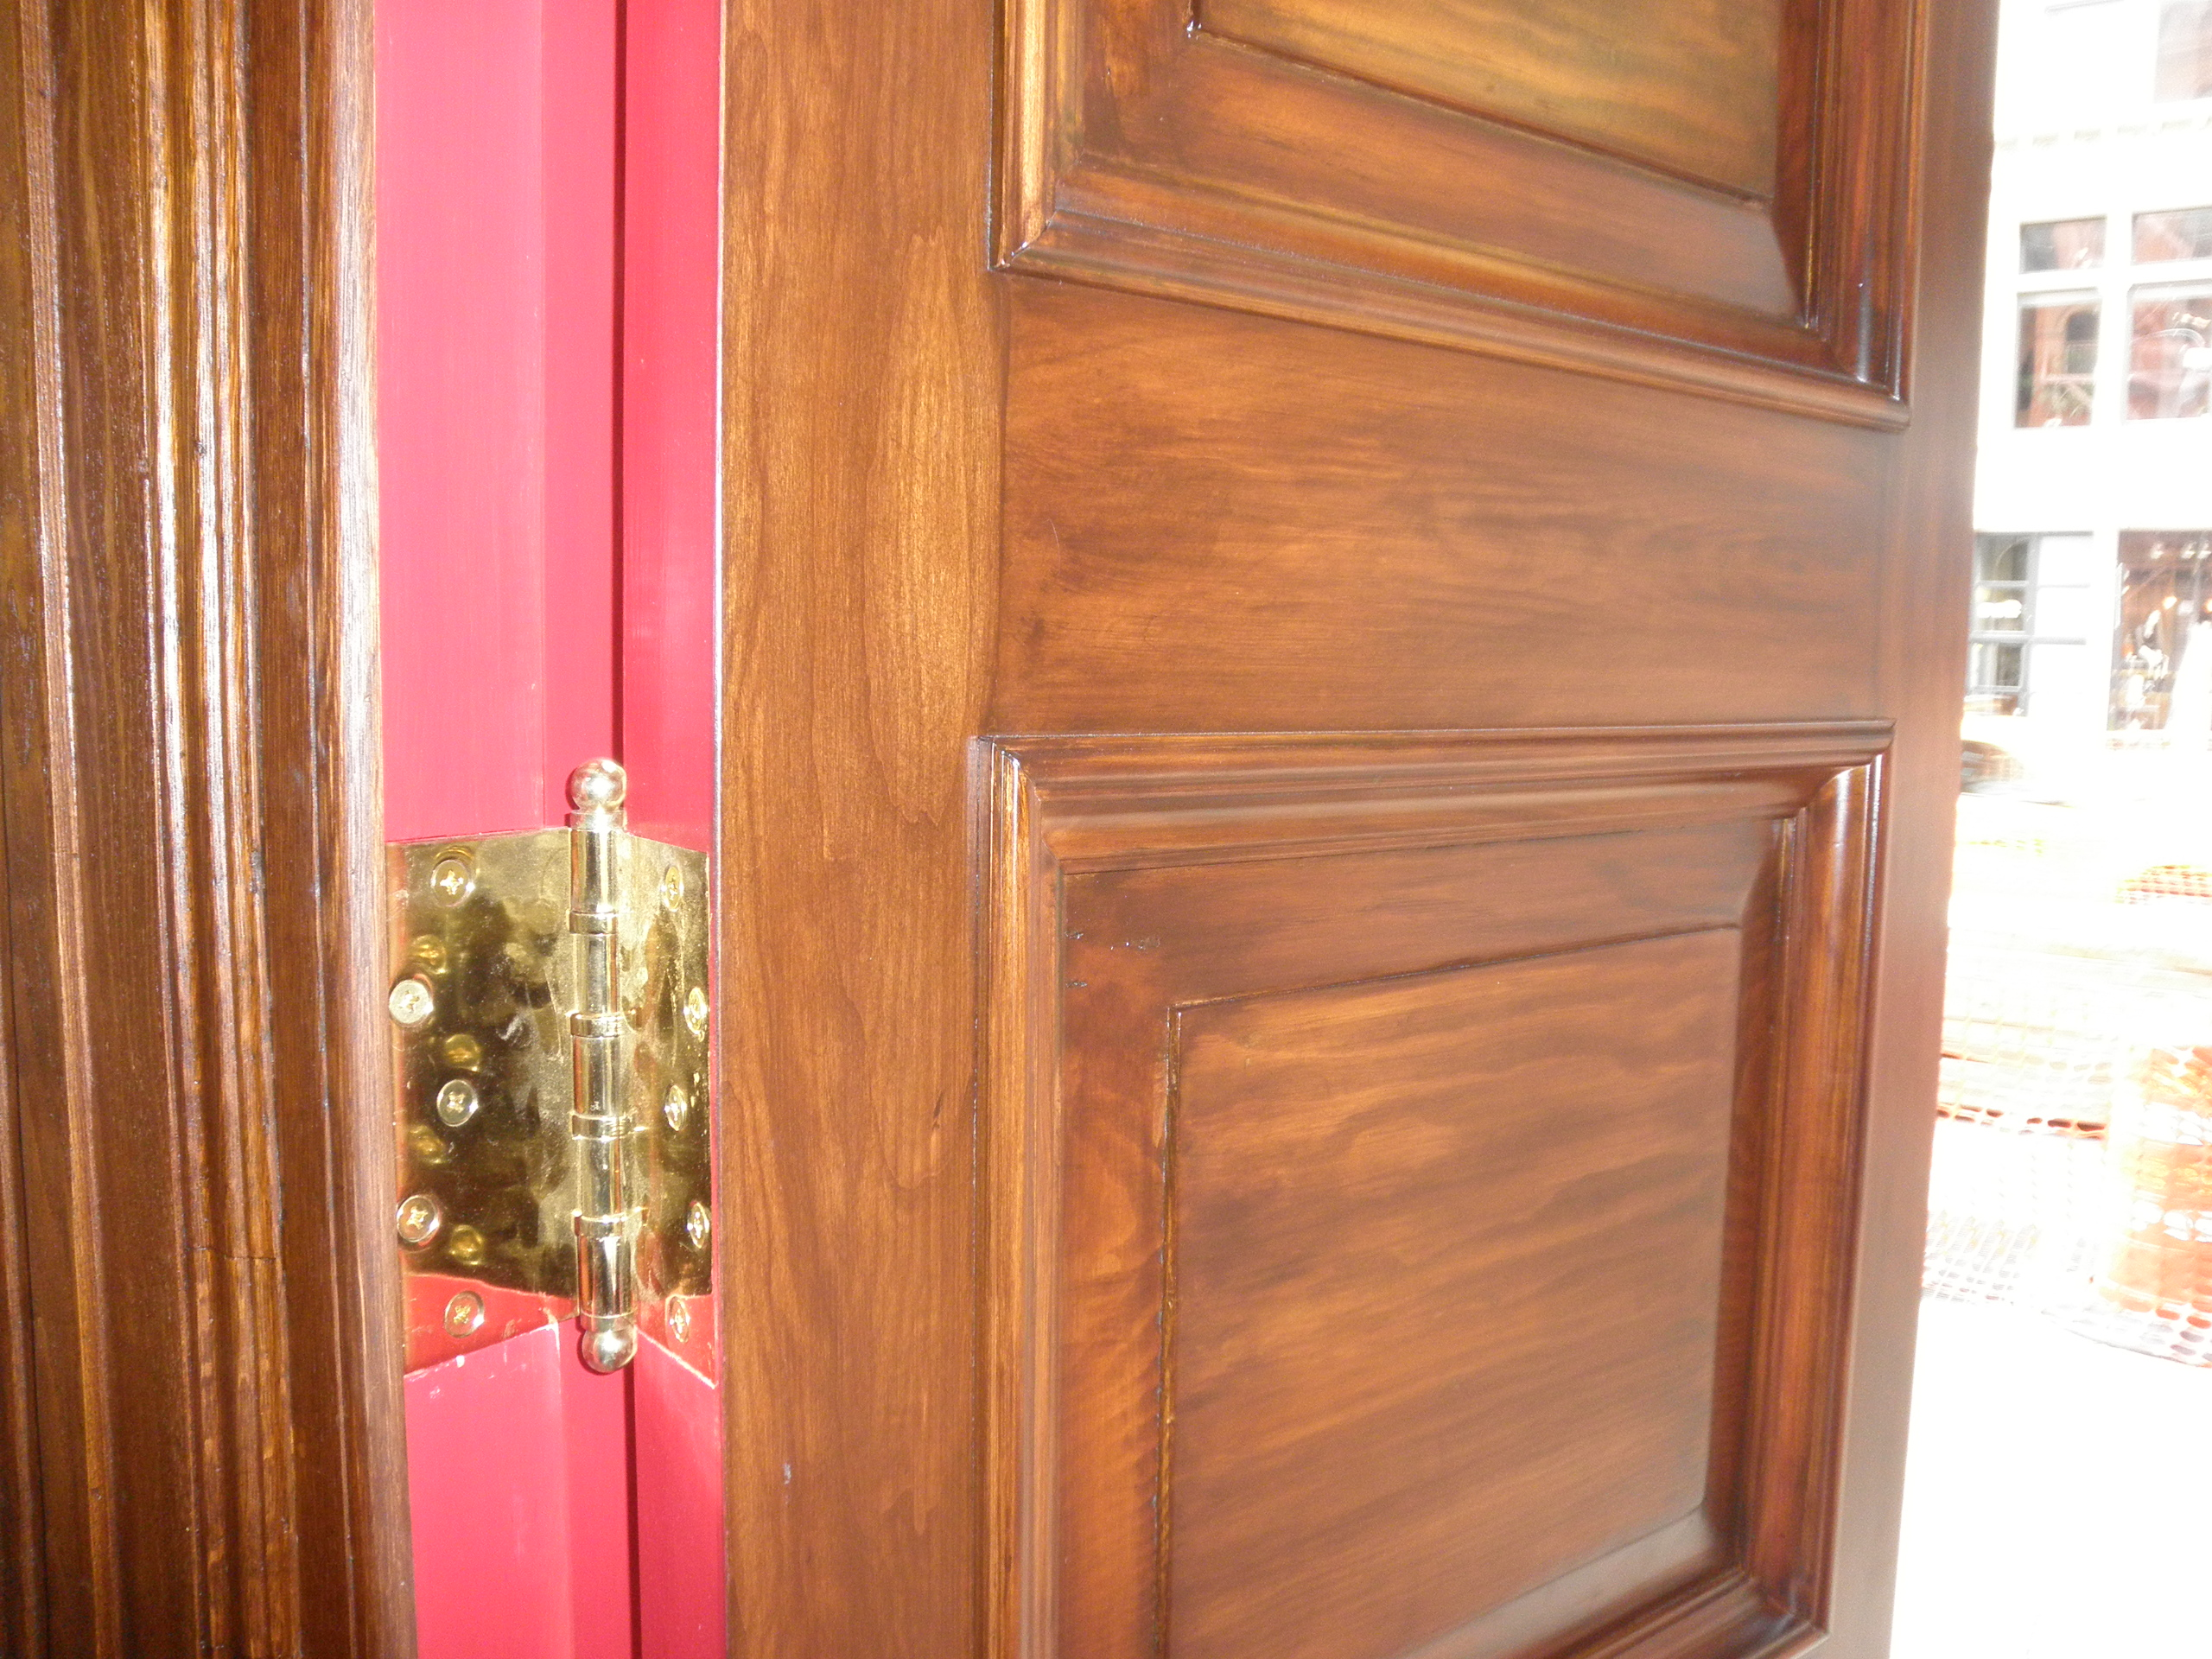 Door detail AFTER restoration and refinishing